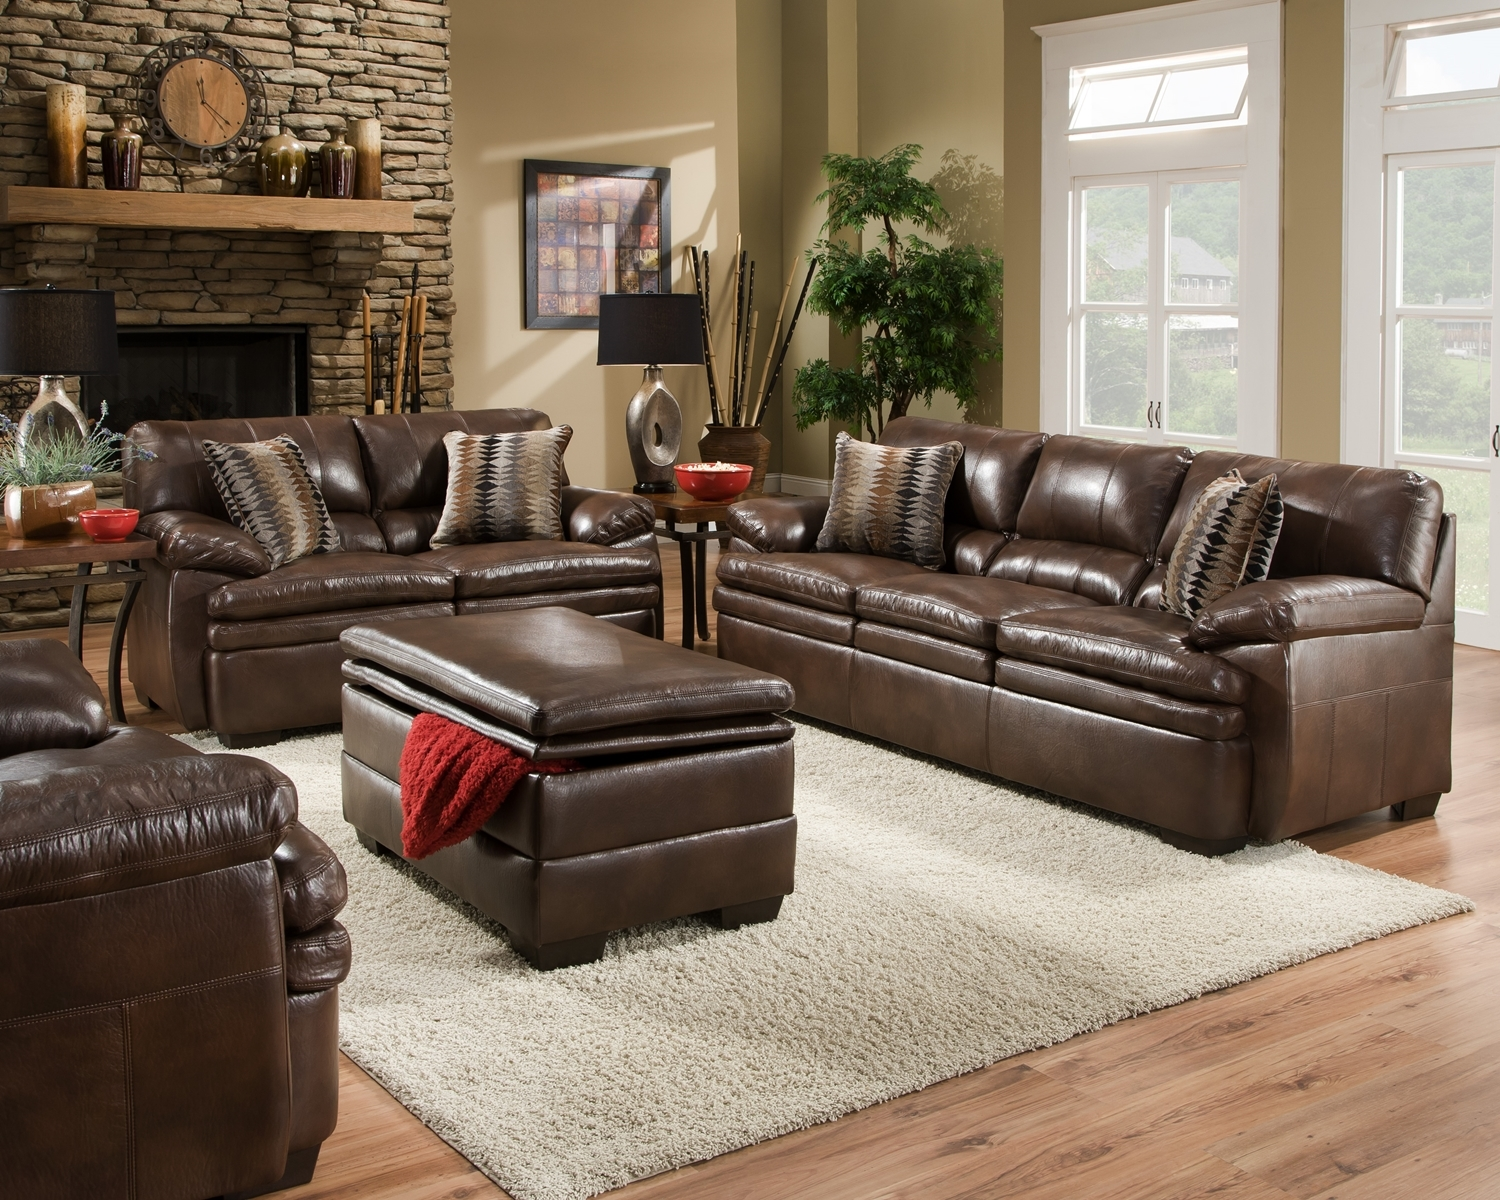 brown bonded leather sofa set casual living room furniture w accent pillows ebay. Black Bedroom Furniture Sets. Home Design Ideas